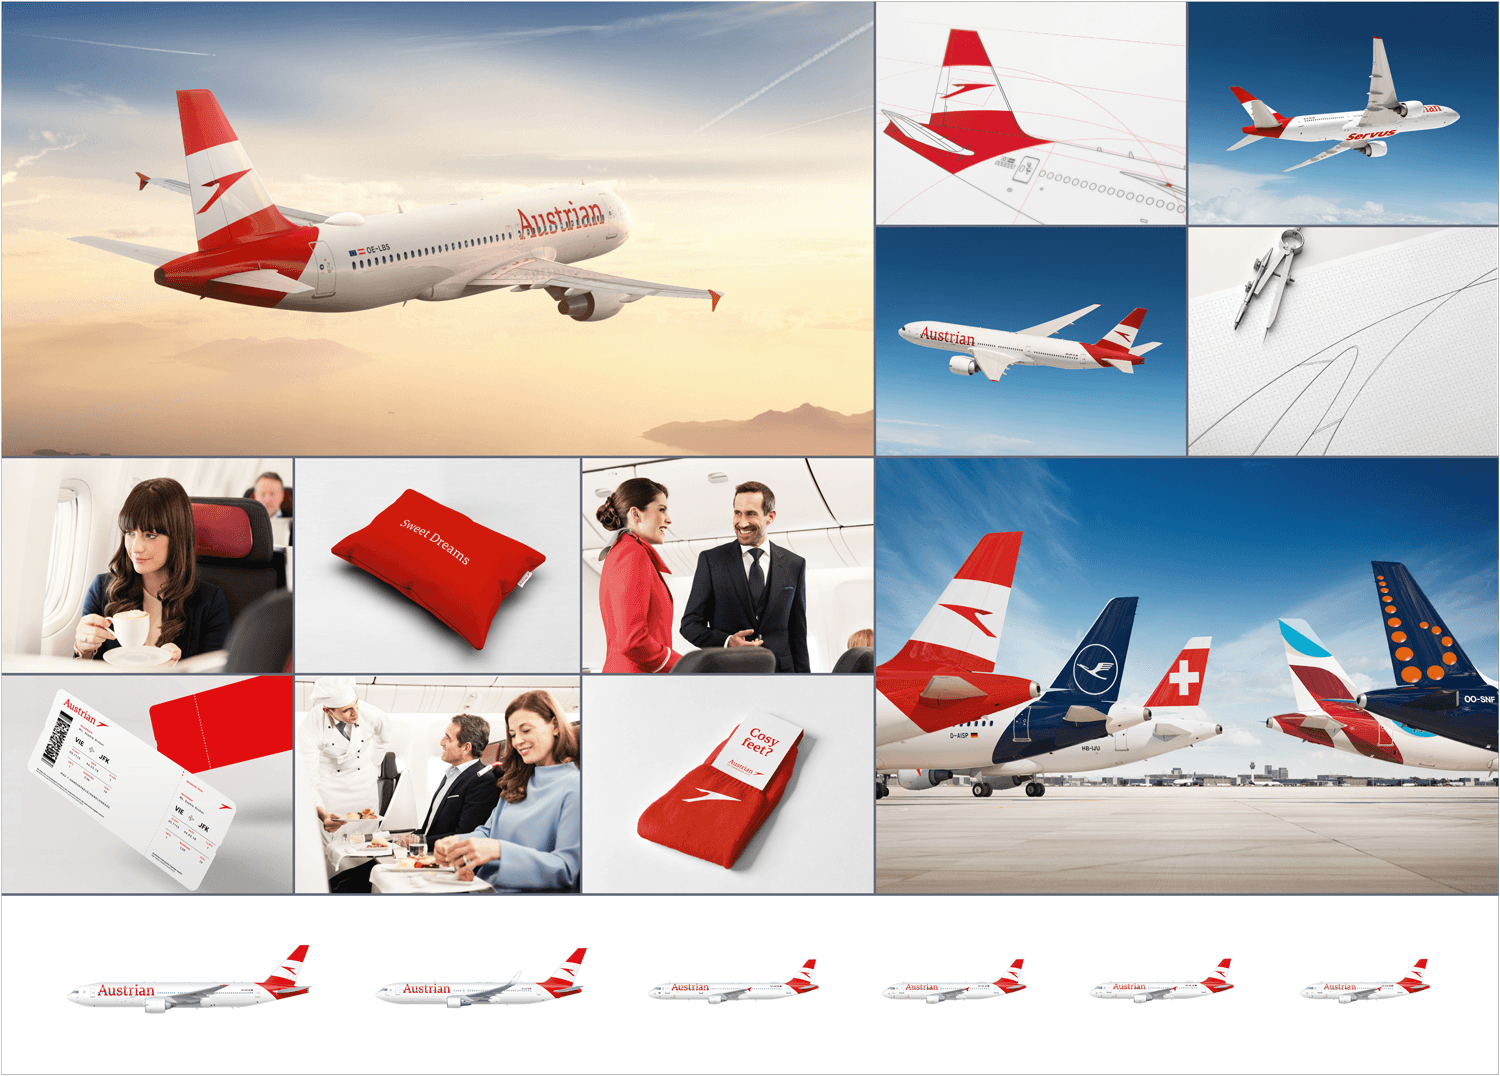 Red Dot Austrian Airlines Rebranding